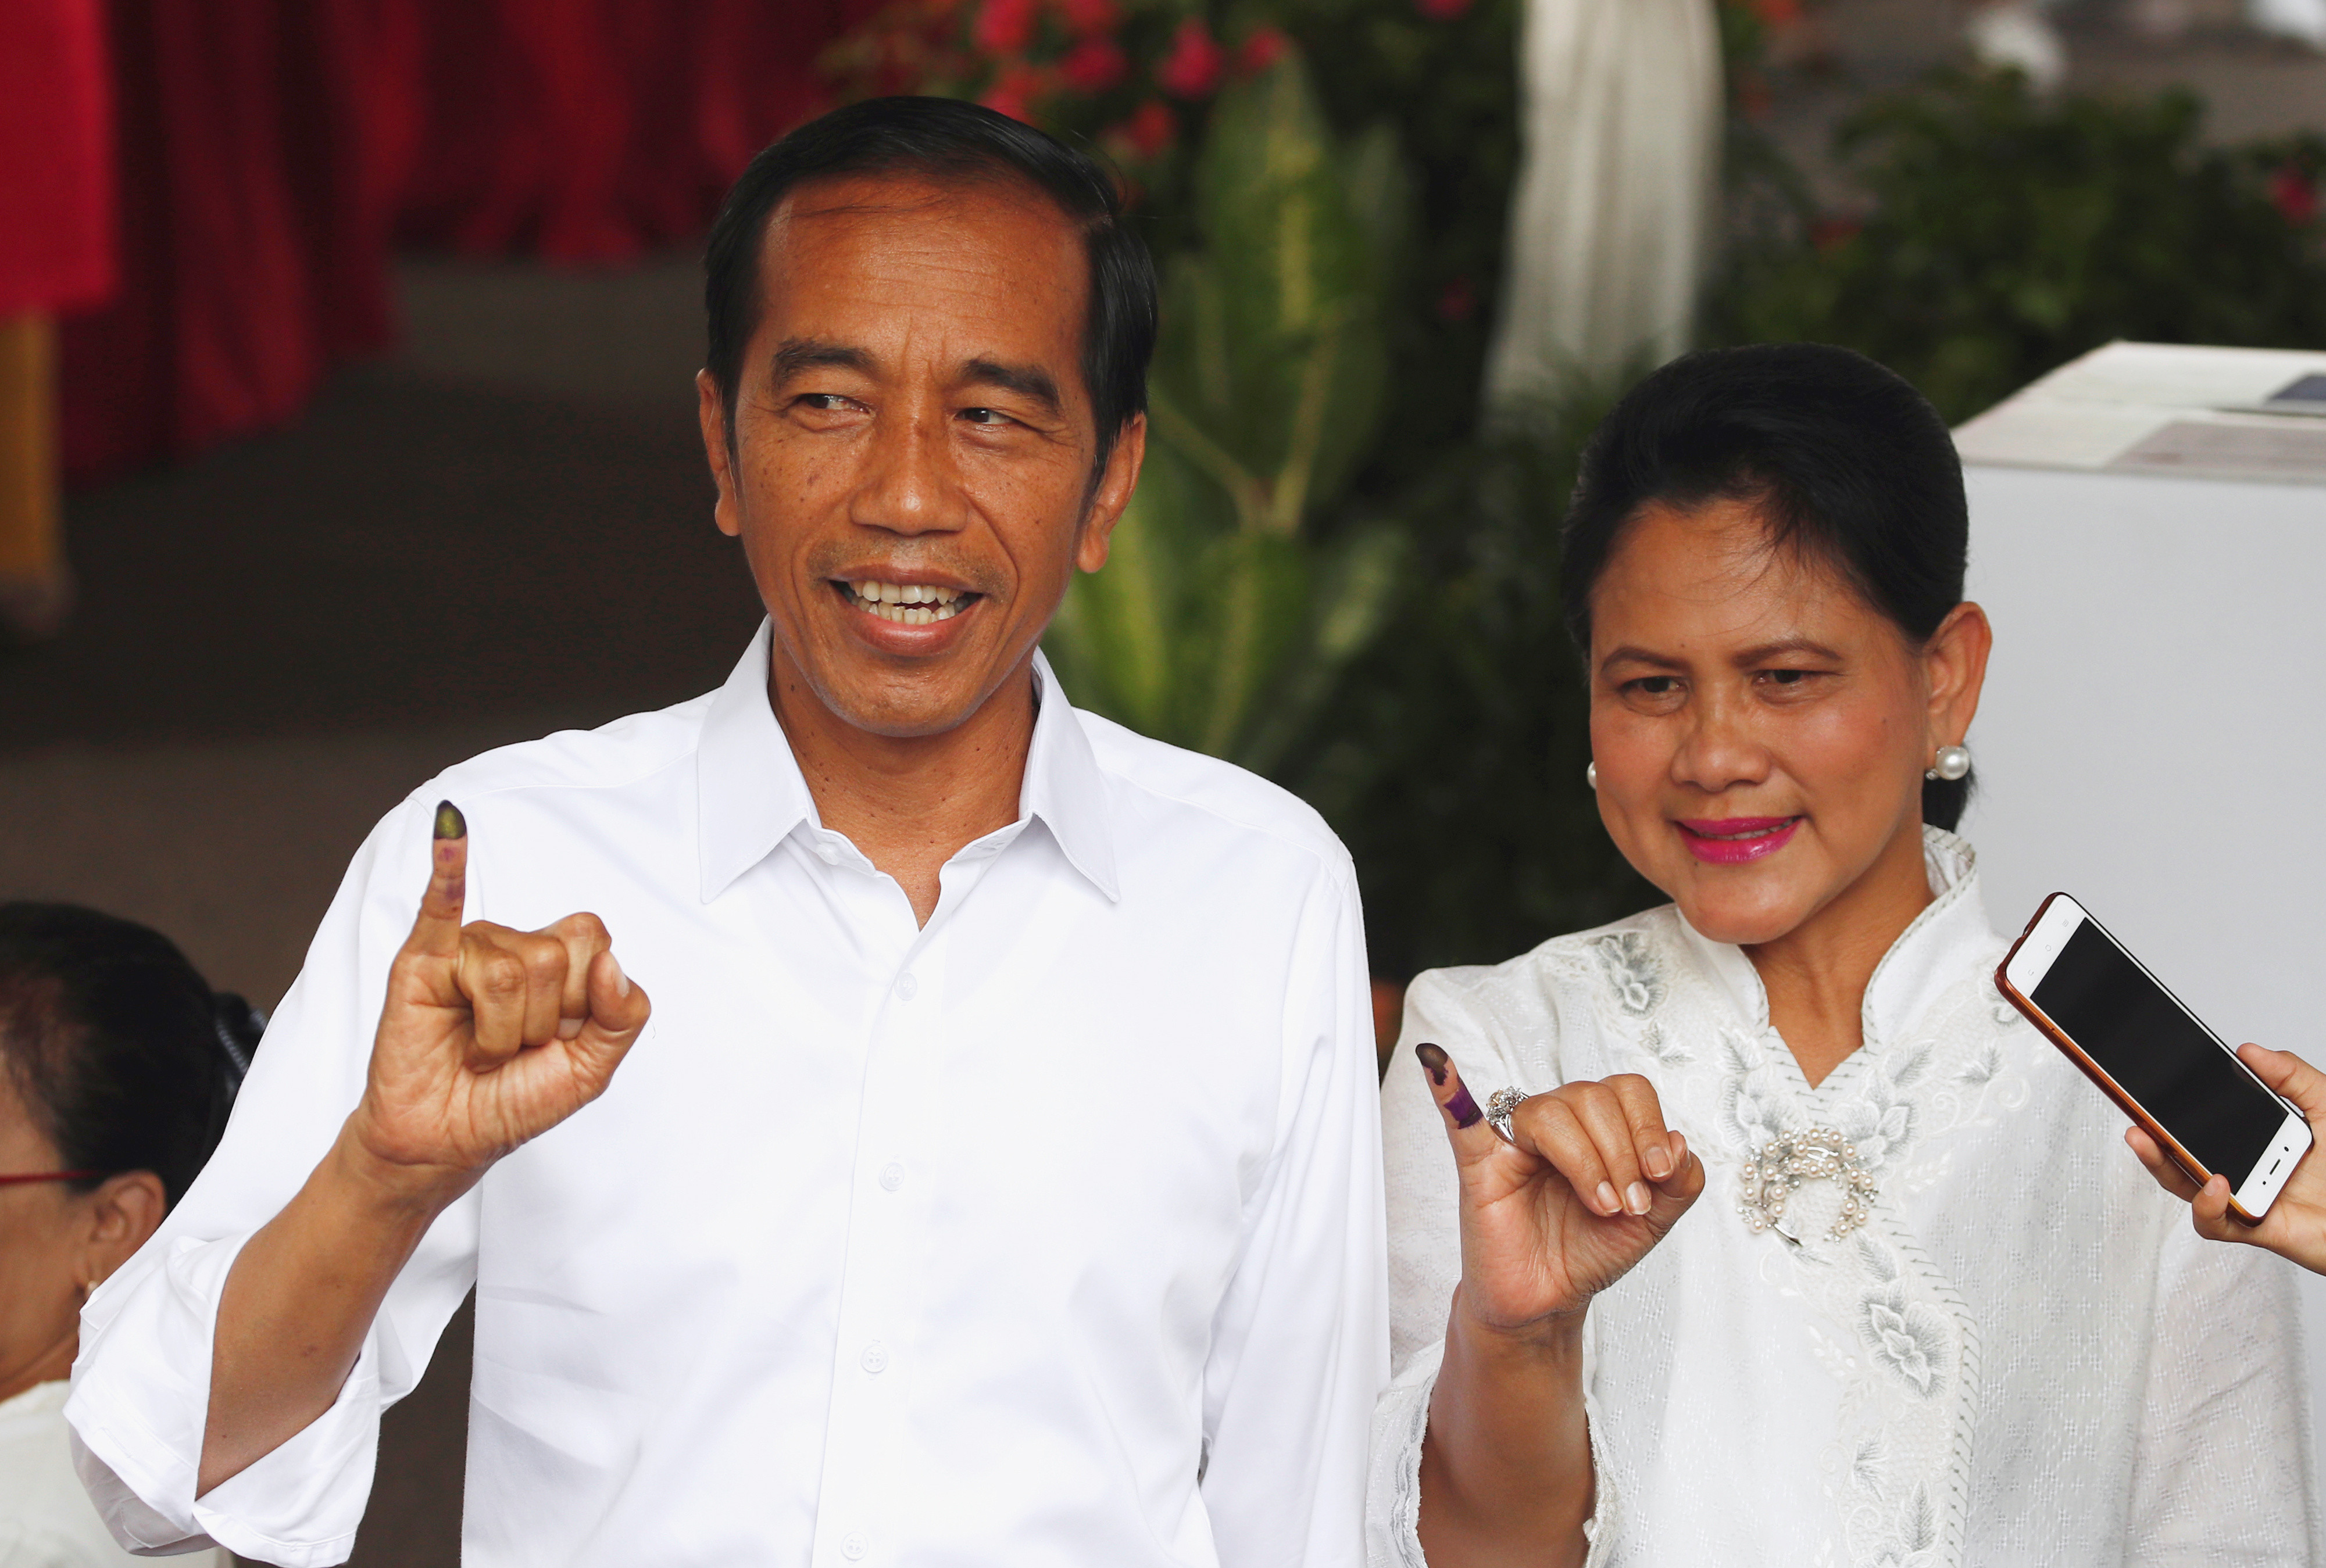 Indonesian President Joko Widodo and first lady Iriana Joko Widodo show their ink-stained fingers after casting their ballots during elections in Jakarta, Indonesia April 17, 2019. REUTERS/Edgar Su - RC1E14849600